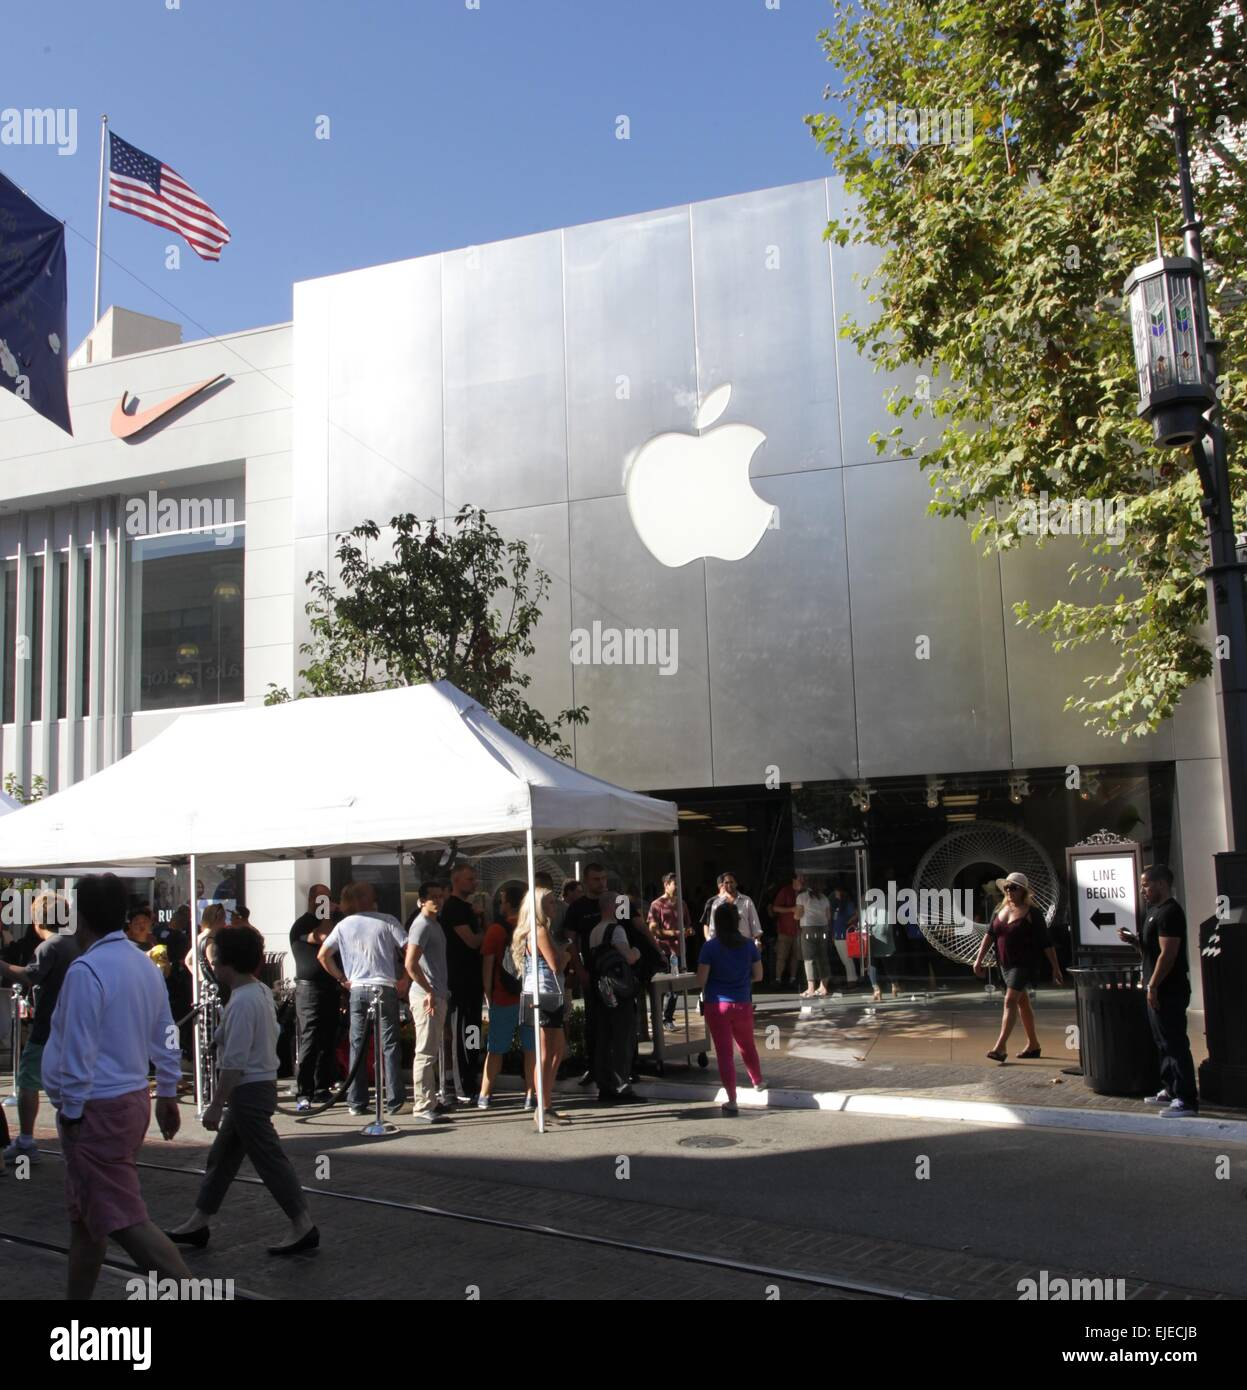 App Store Sindelfingen Iphone 6 Fans Wait In Line At The Grove Near The Apple Store In